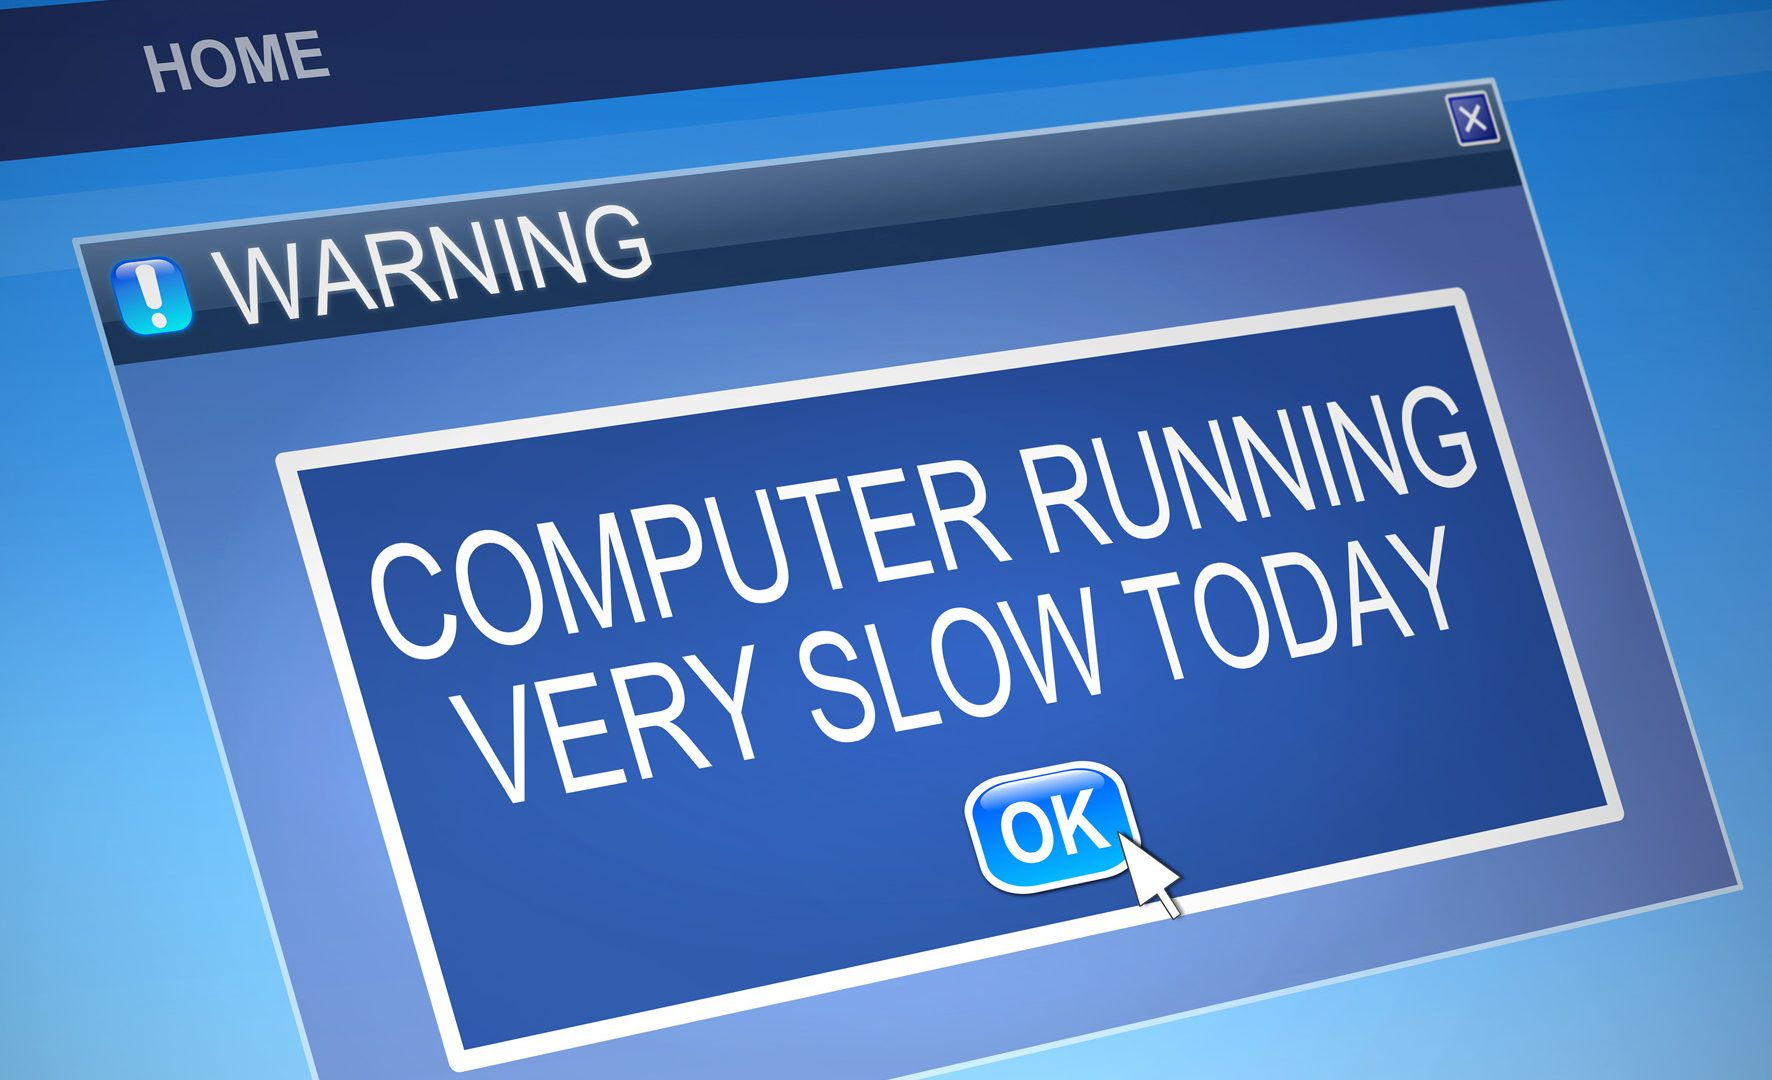 THIS ONE TRICK WILL FIX A SLOW COMPUTER